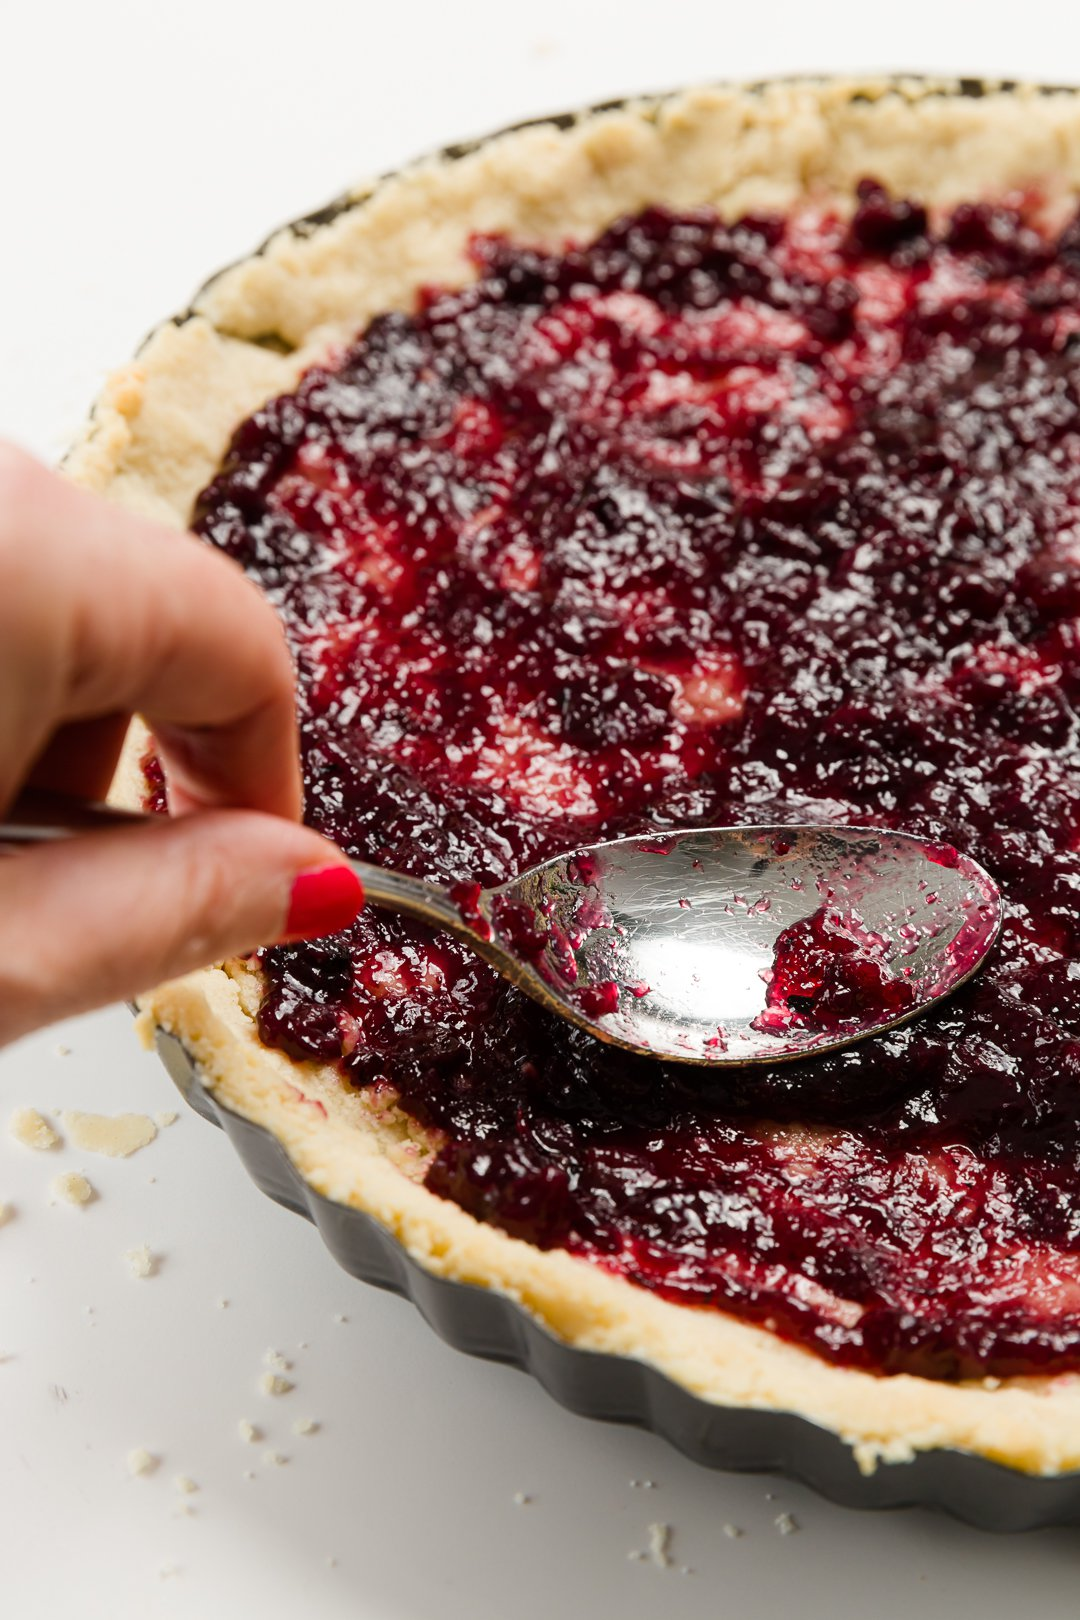 Spreading jam on an unbaked tart using the back of a spoon